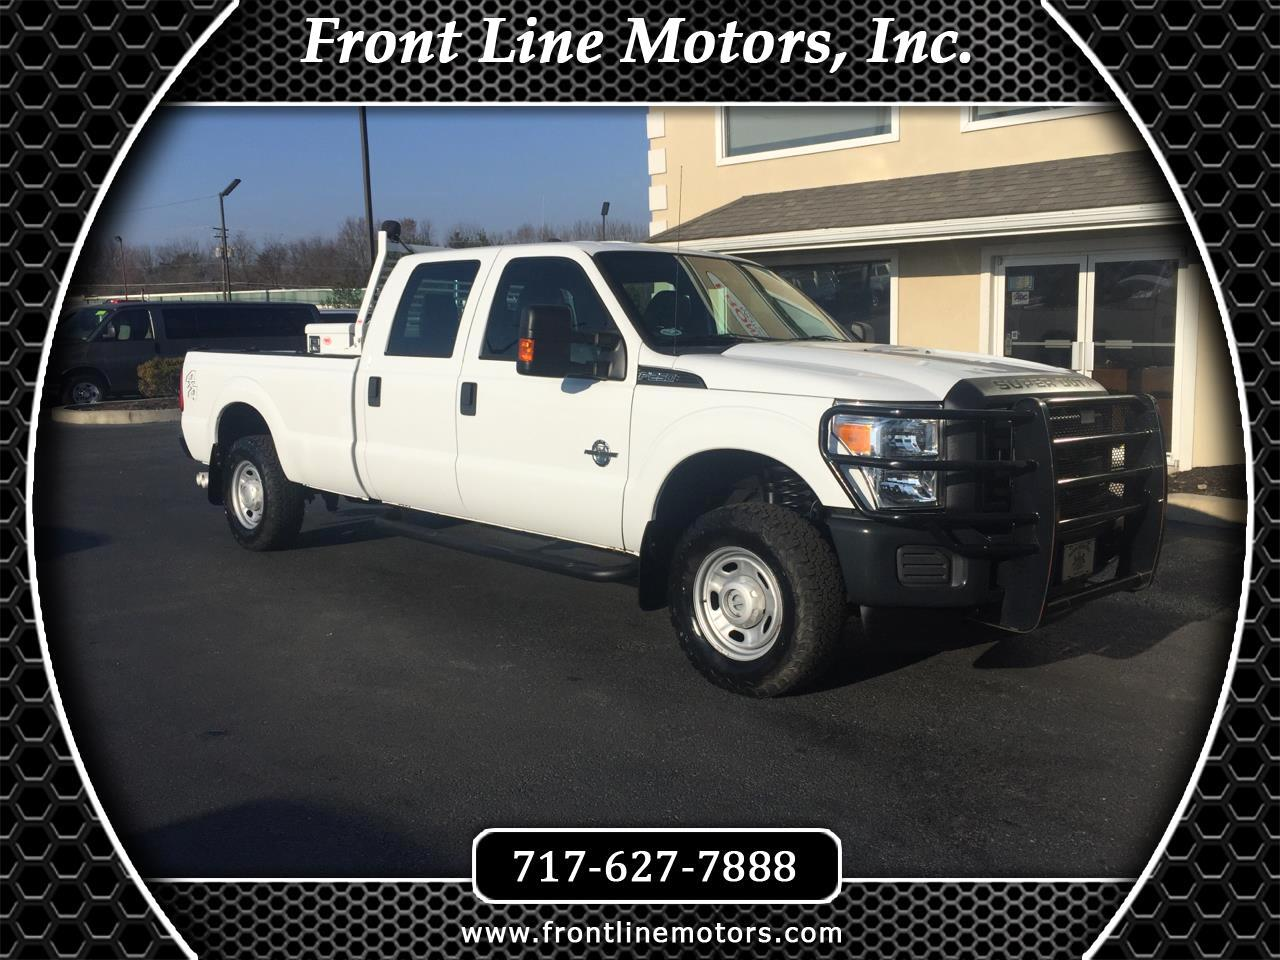 2012 Ford Super Duty F-250 SRW 4WD Crew Cab 172